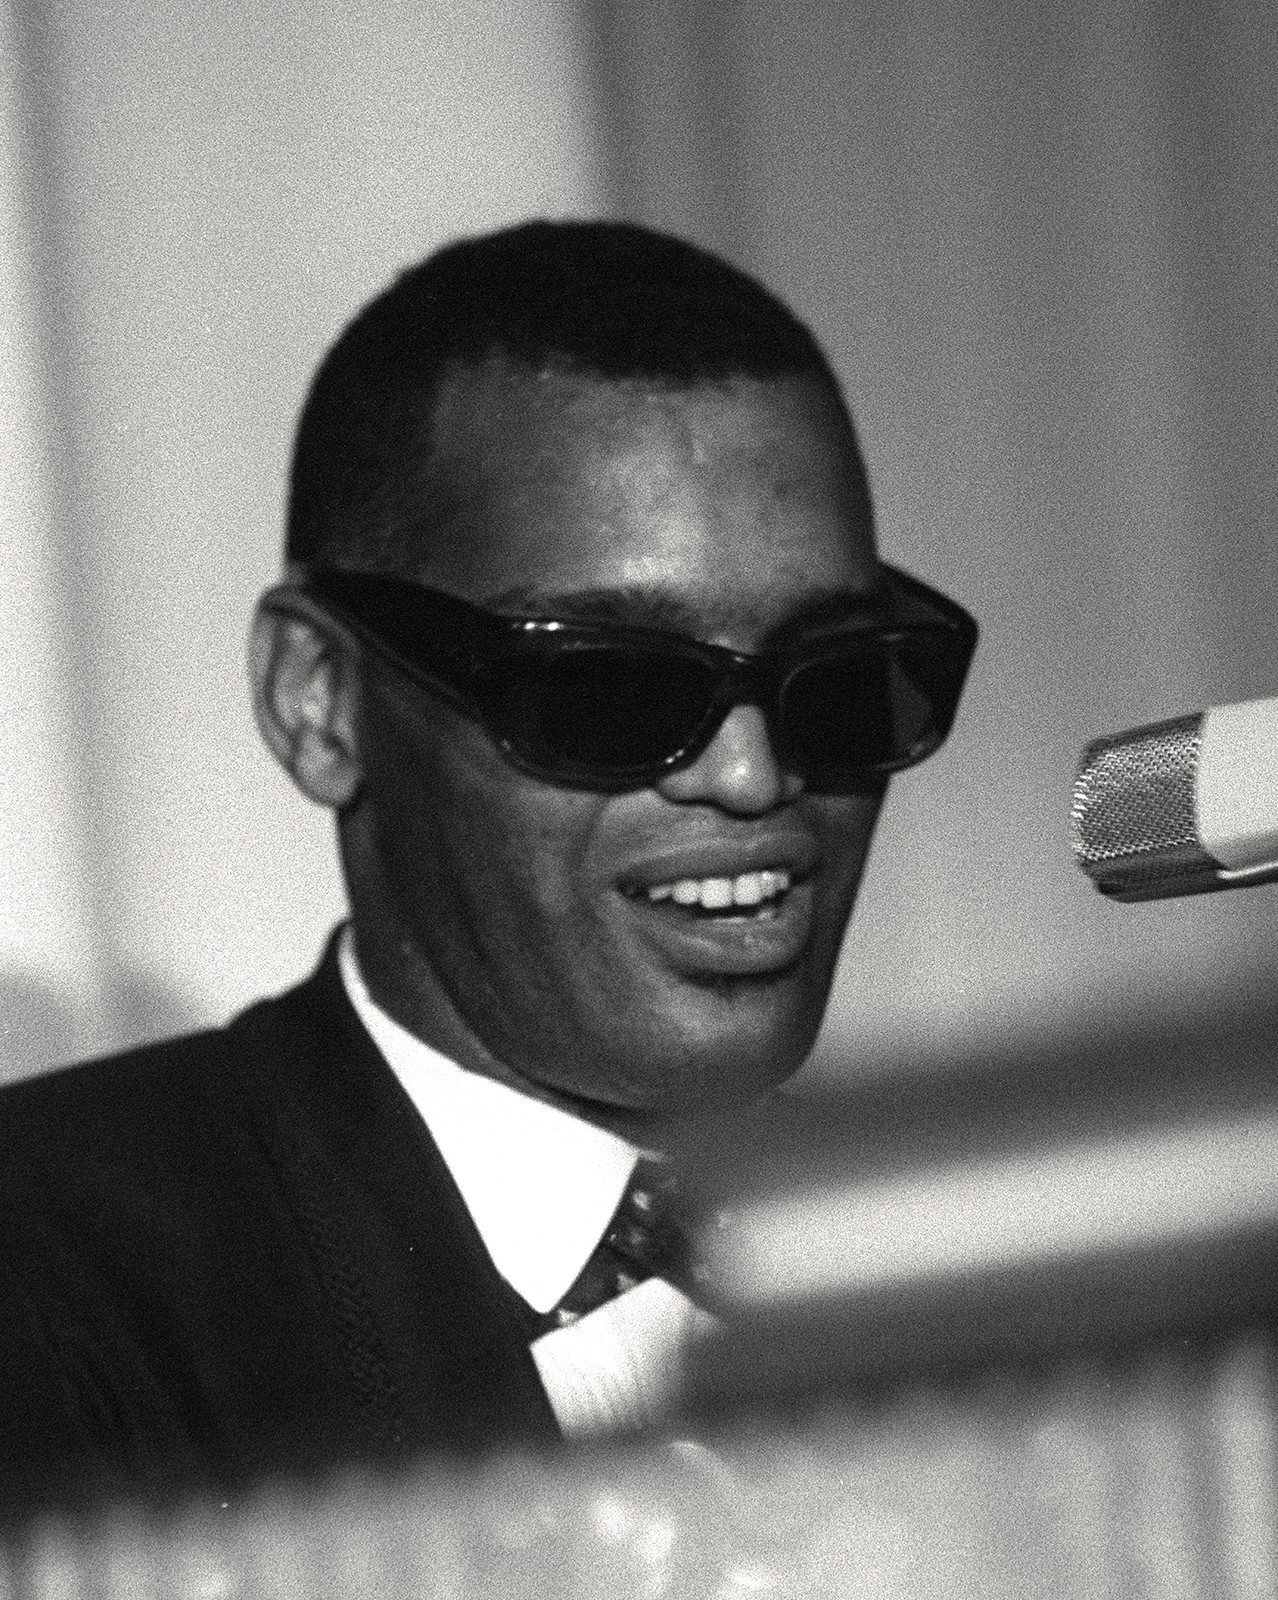 Qvc Masson Ray Charles Video Museum July 2010